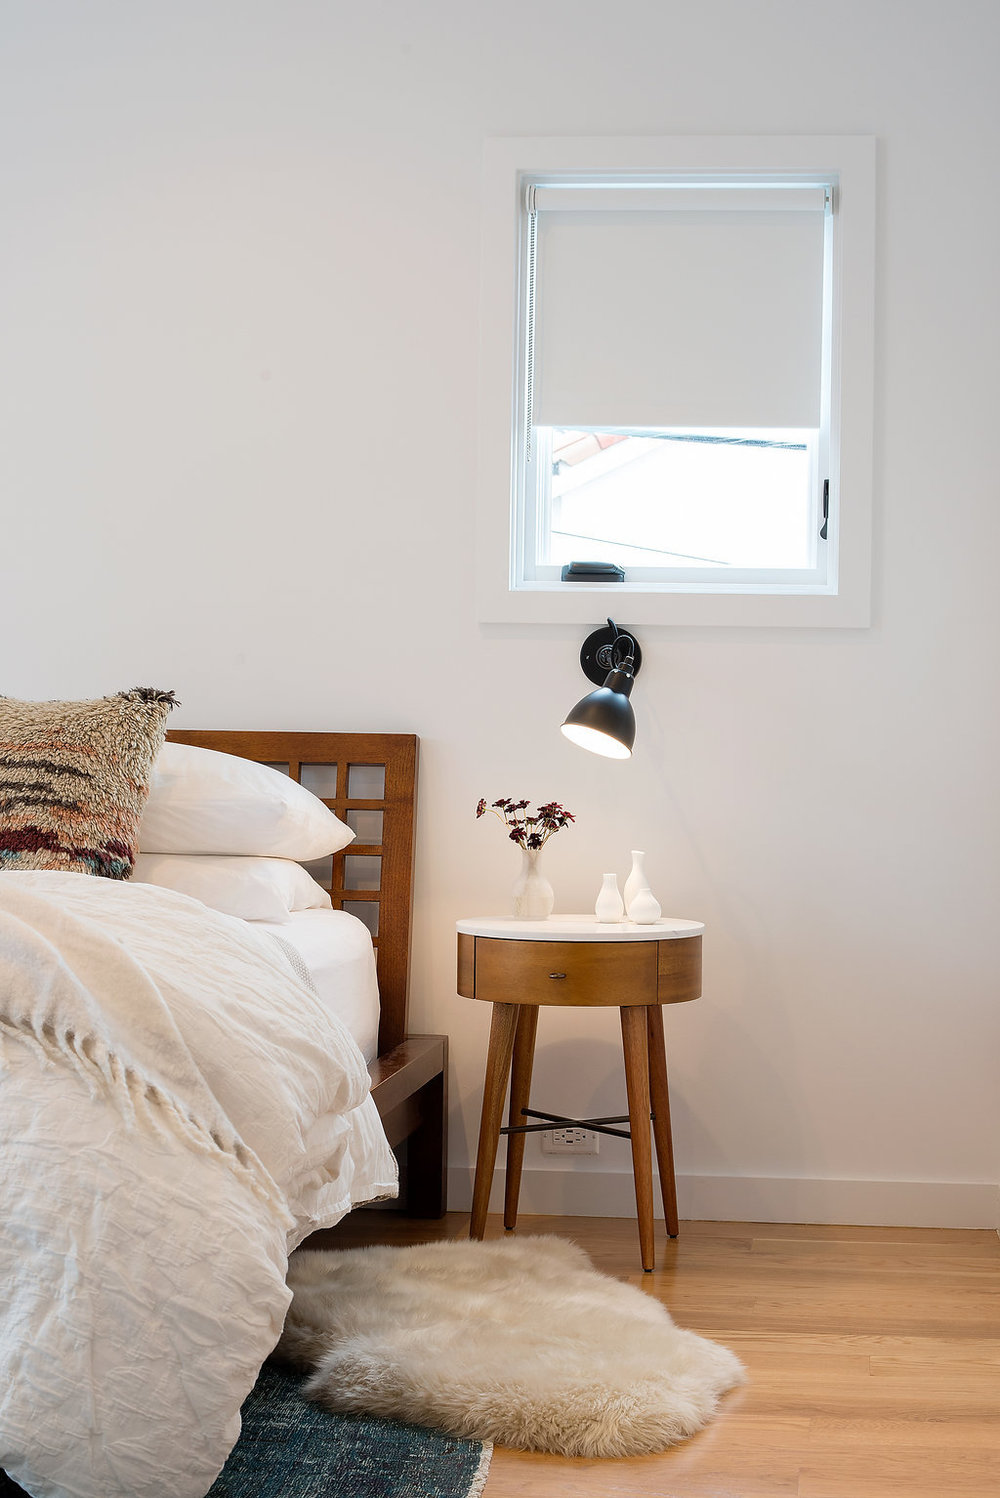 bedroom with wooden bed and black wall lamp and wood nightstand and sheepskin rug and wood flooring.jpg